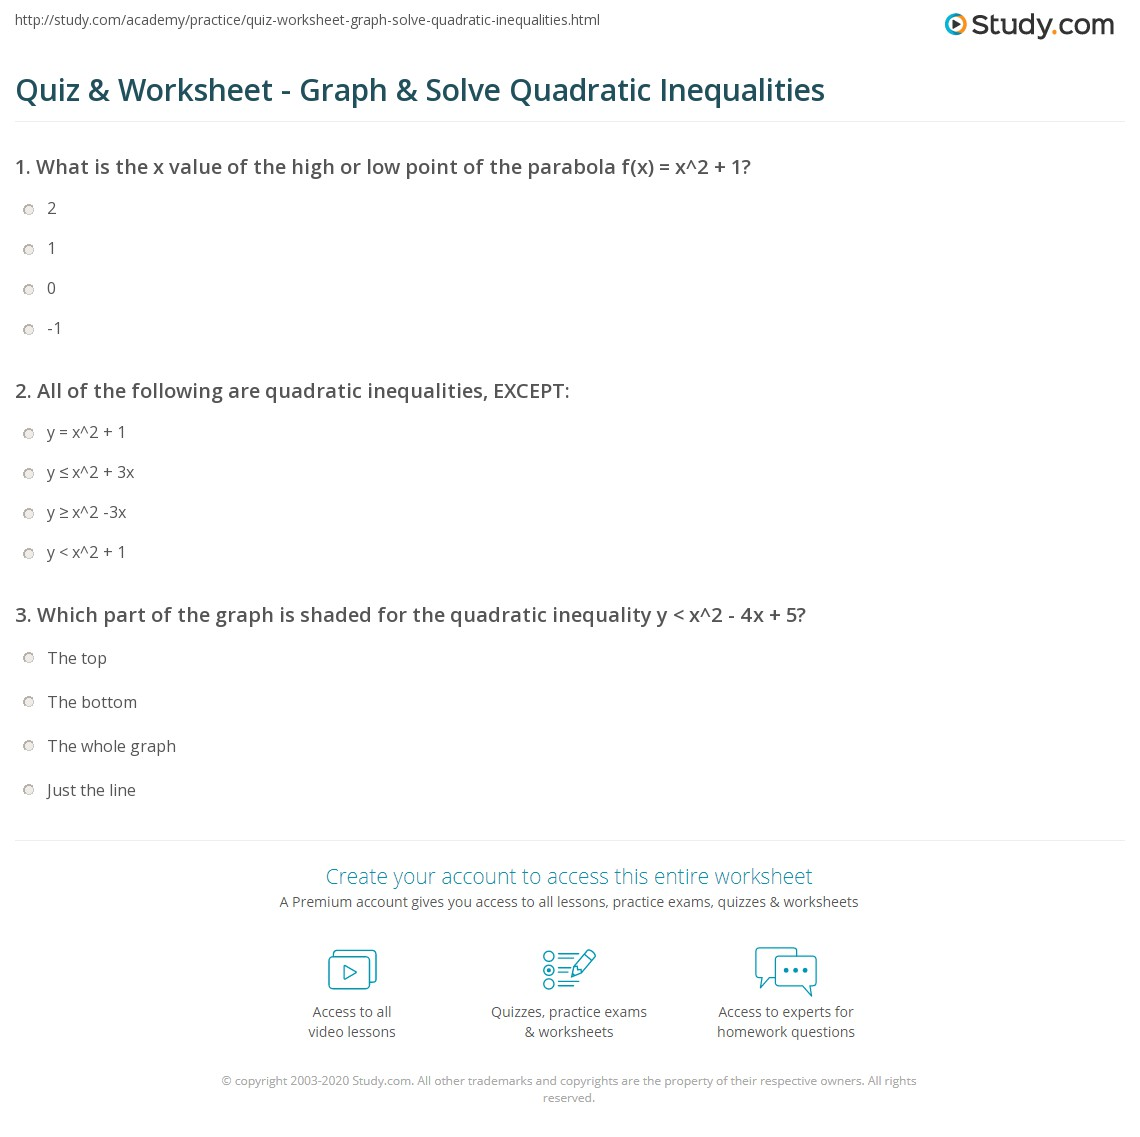 worksheet Inequalities Worksheet With Answers quiz worksheet graph solve quadratic inequalities study com print graphing solving examples process worksheet